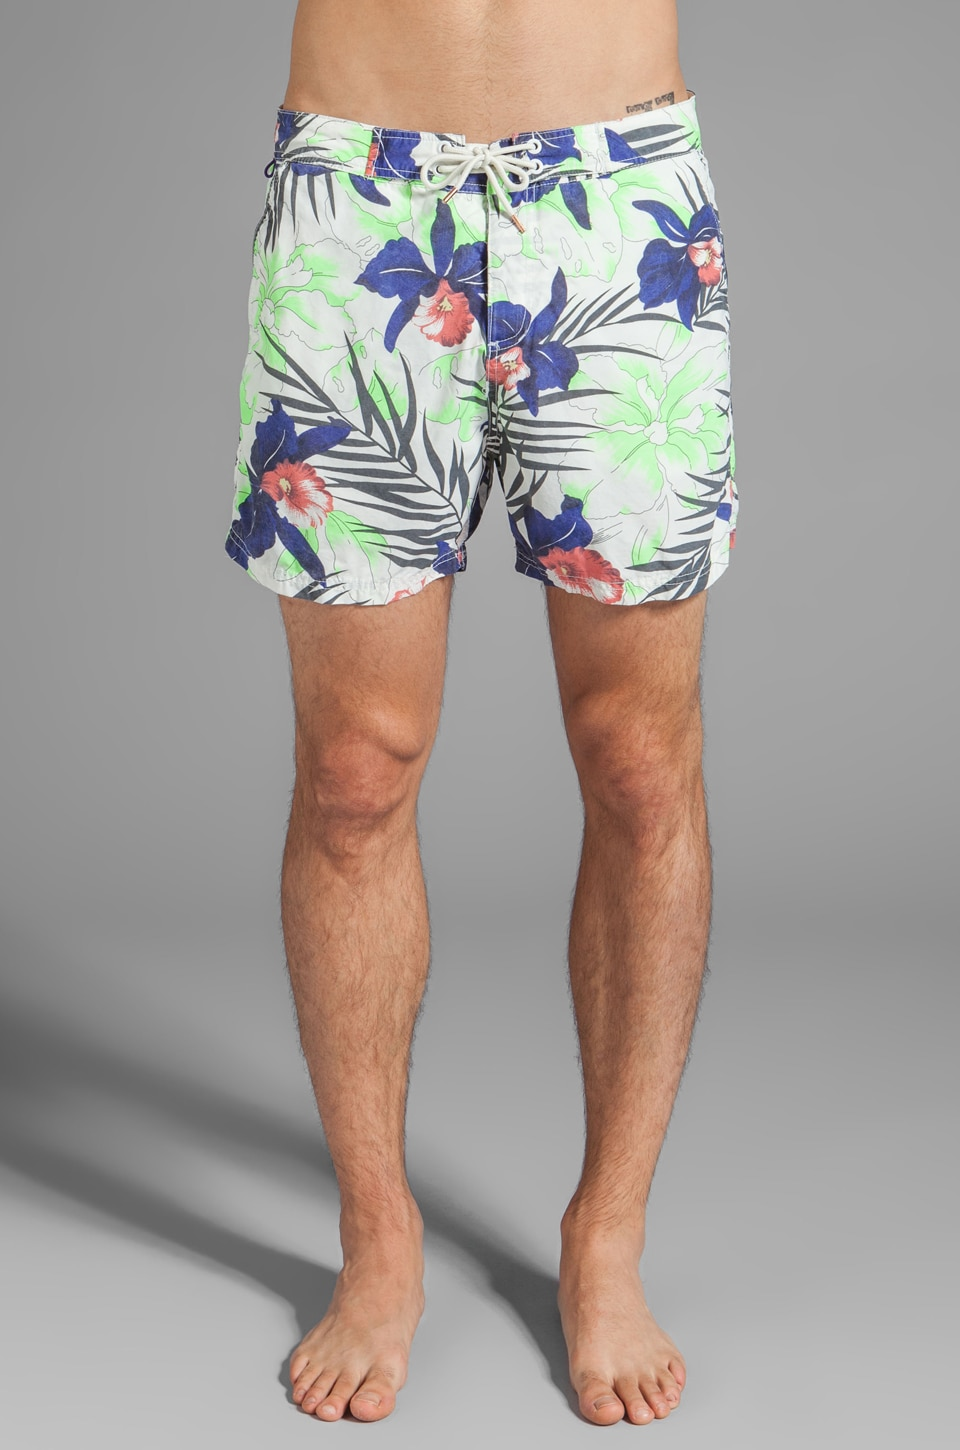 Scotch & Soda Floral Print Swim Short in Green/White/Blue